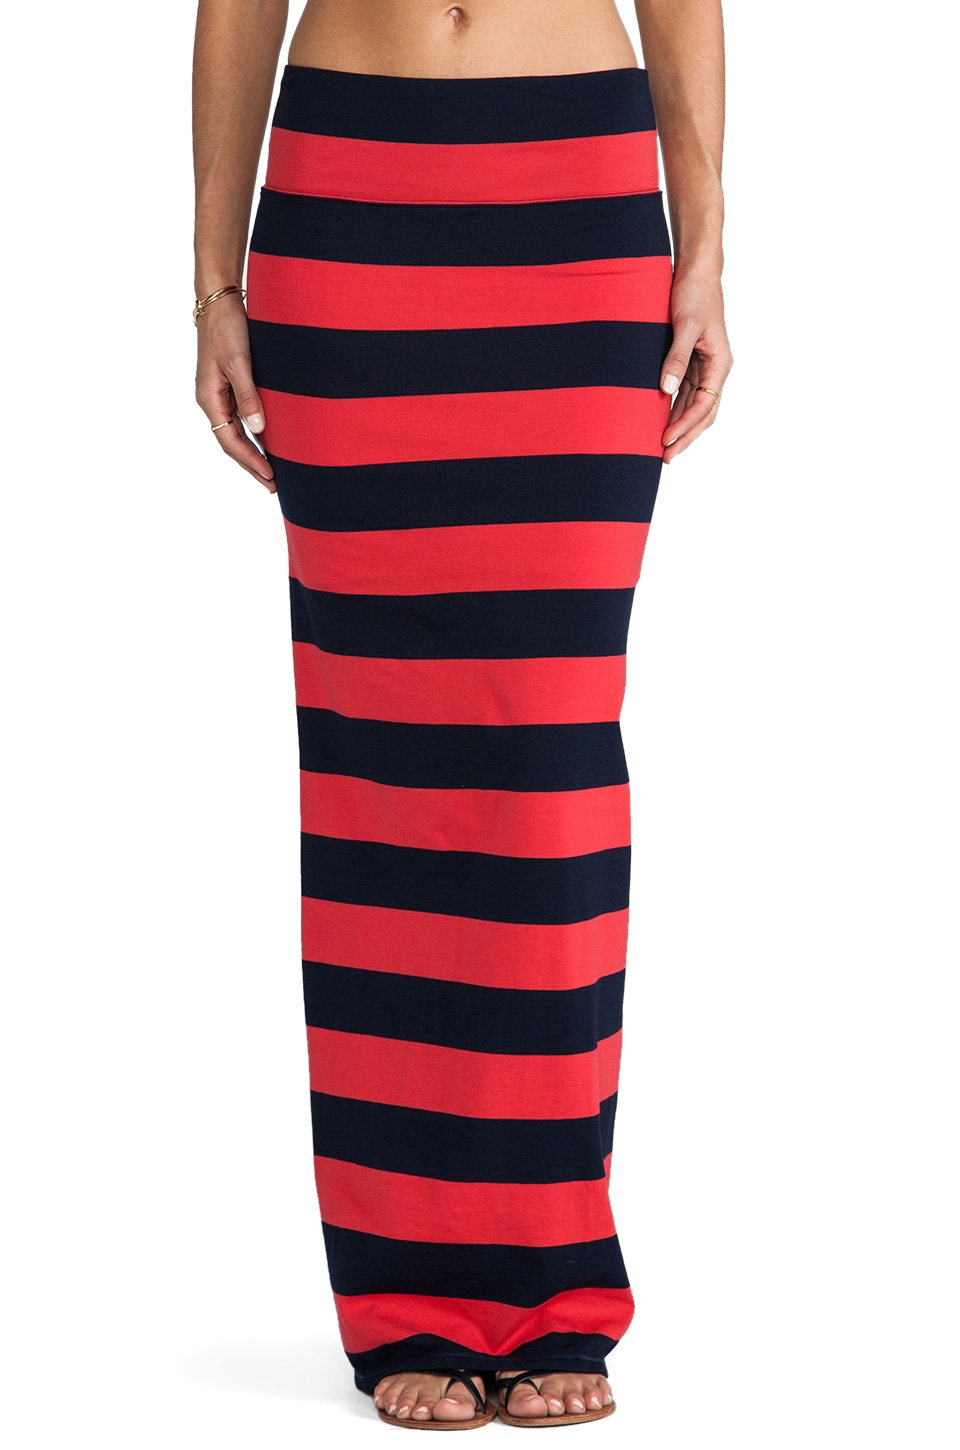 Free People Stripe Column Skirt in Cherry/Navy Combo